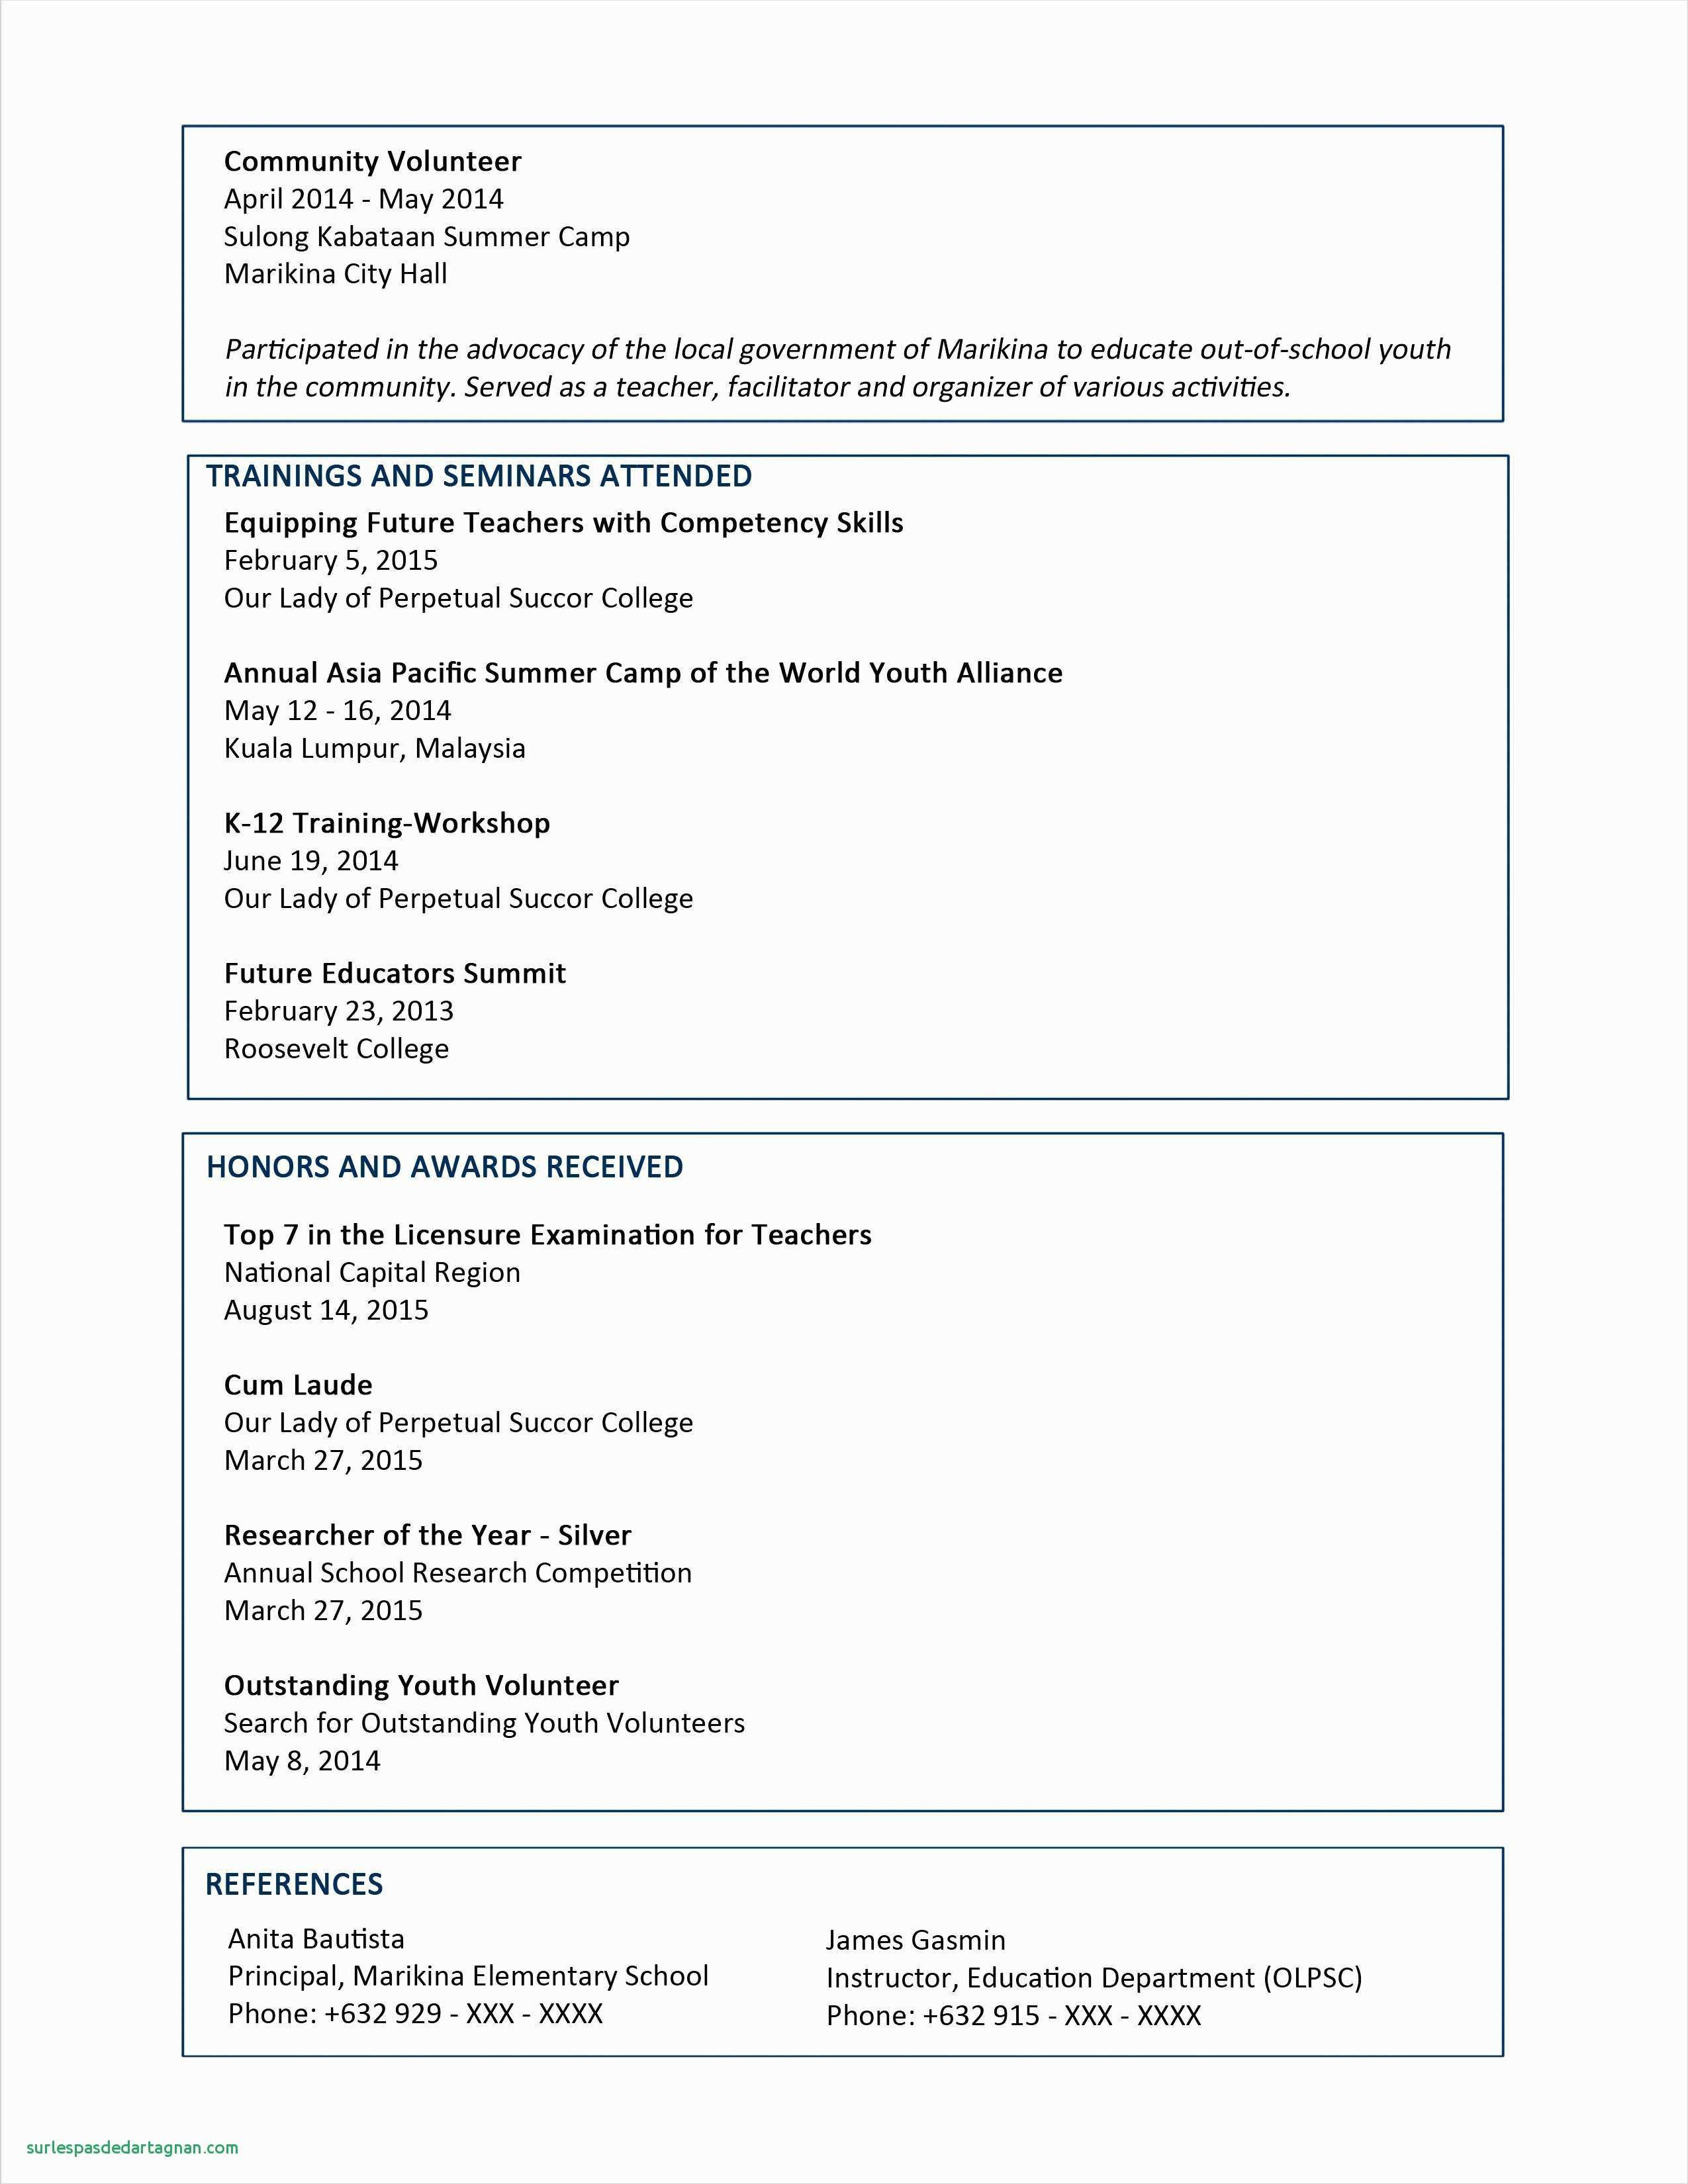 Resume Templates that Stand Out - Free Resume Templates that Stand Out Inspirational Resume for